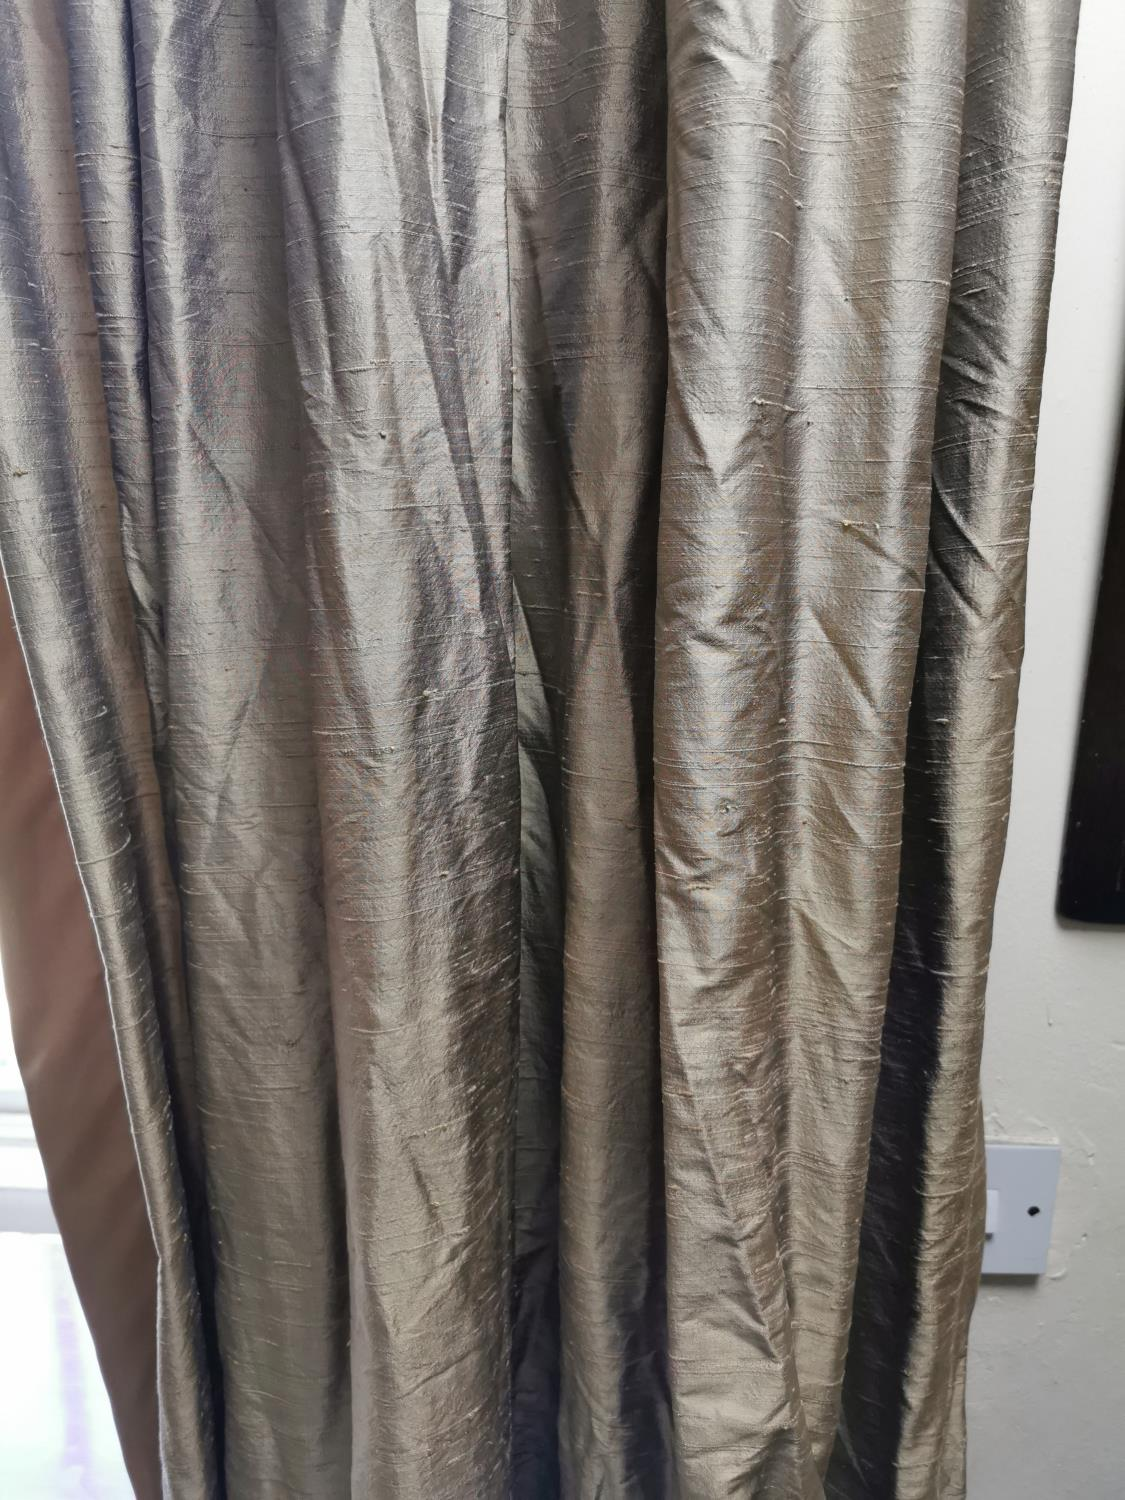 Pair of silk curtains. - Image 2 of 2